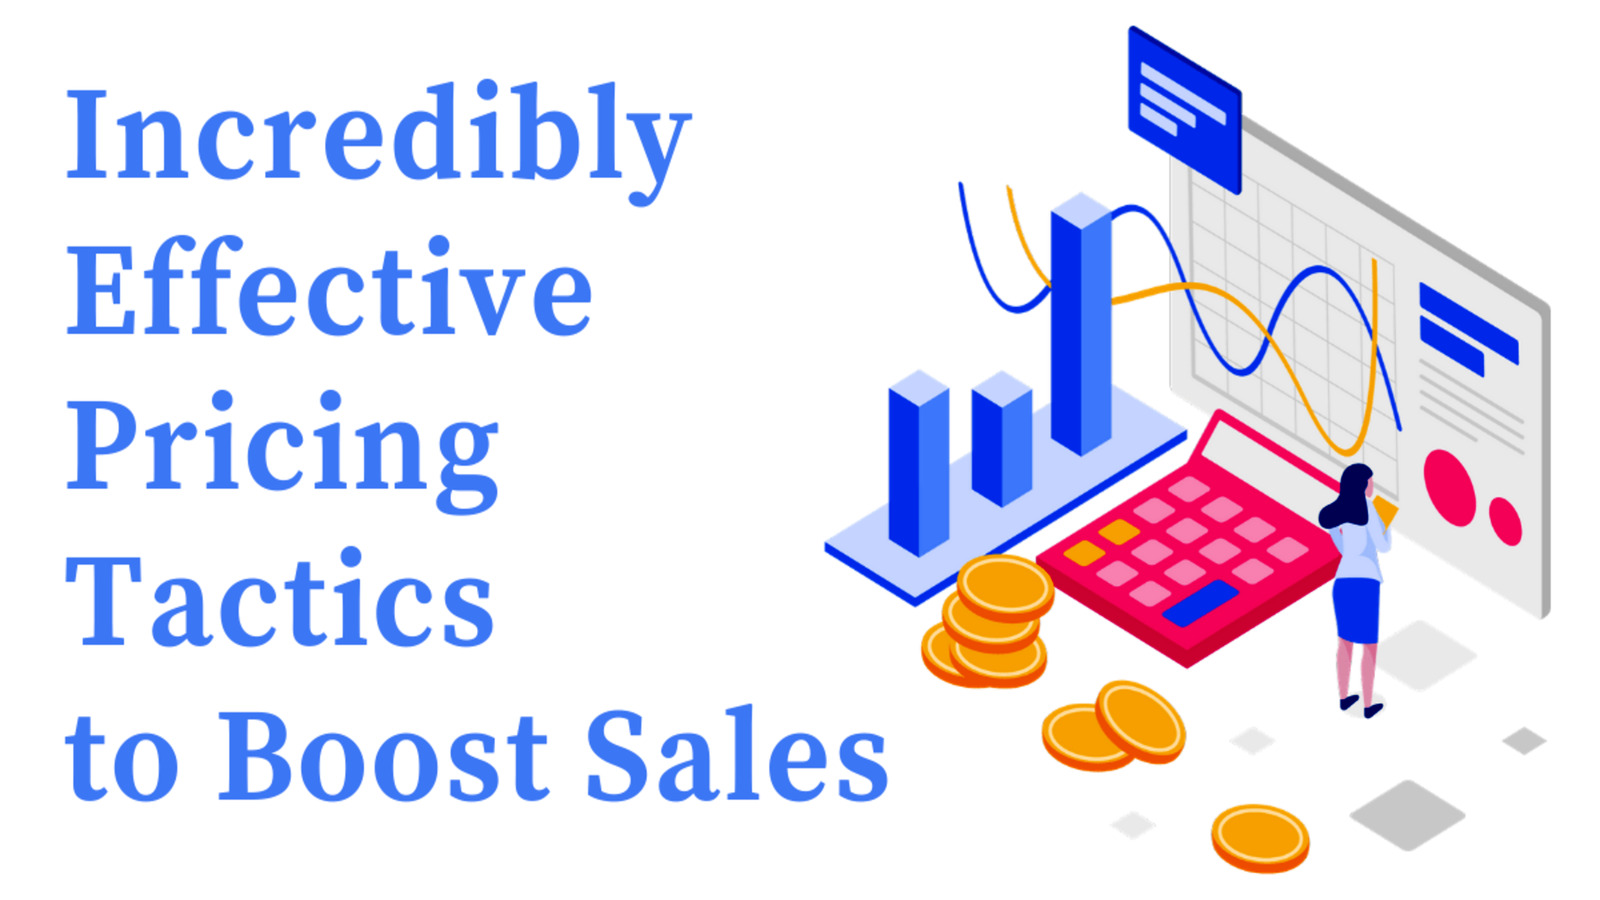 Incredibly effective pricing tactics to boost sales